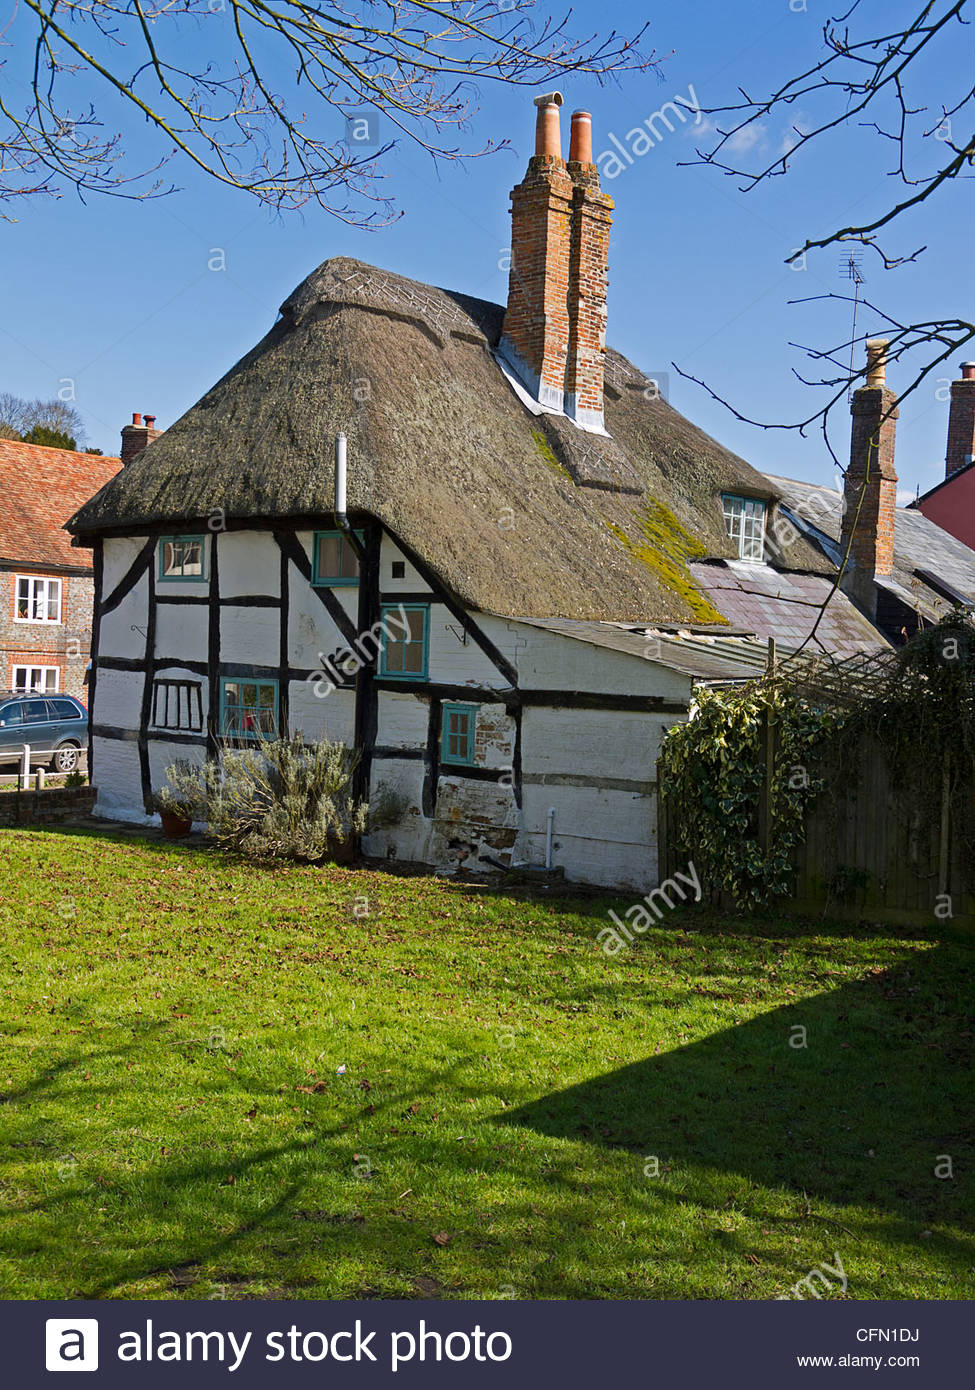 Old Thatched Cottage East Meon Hampshire England UK - Stock Image